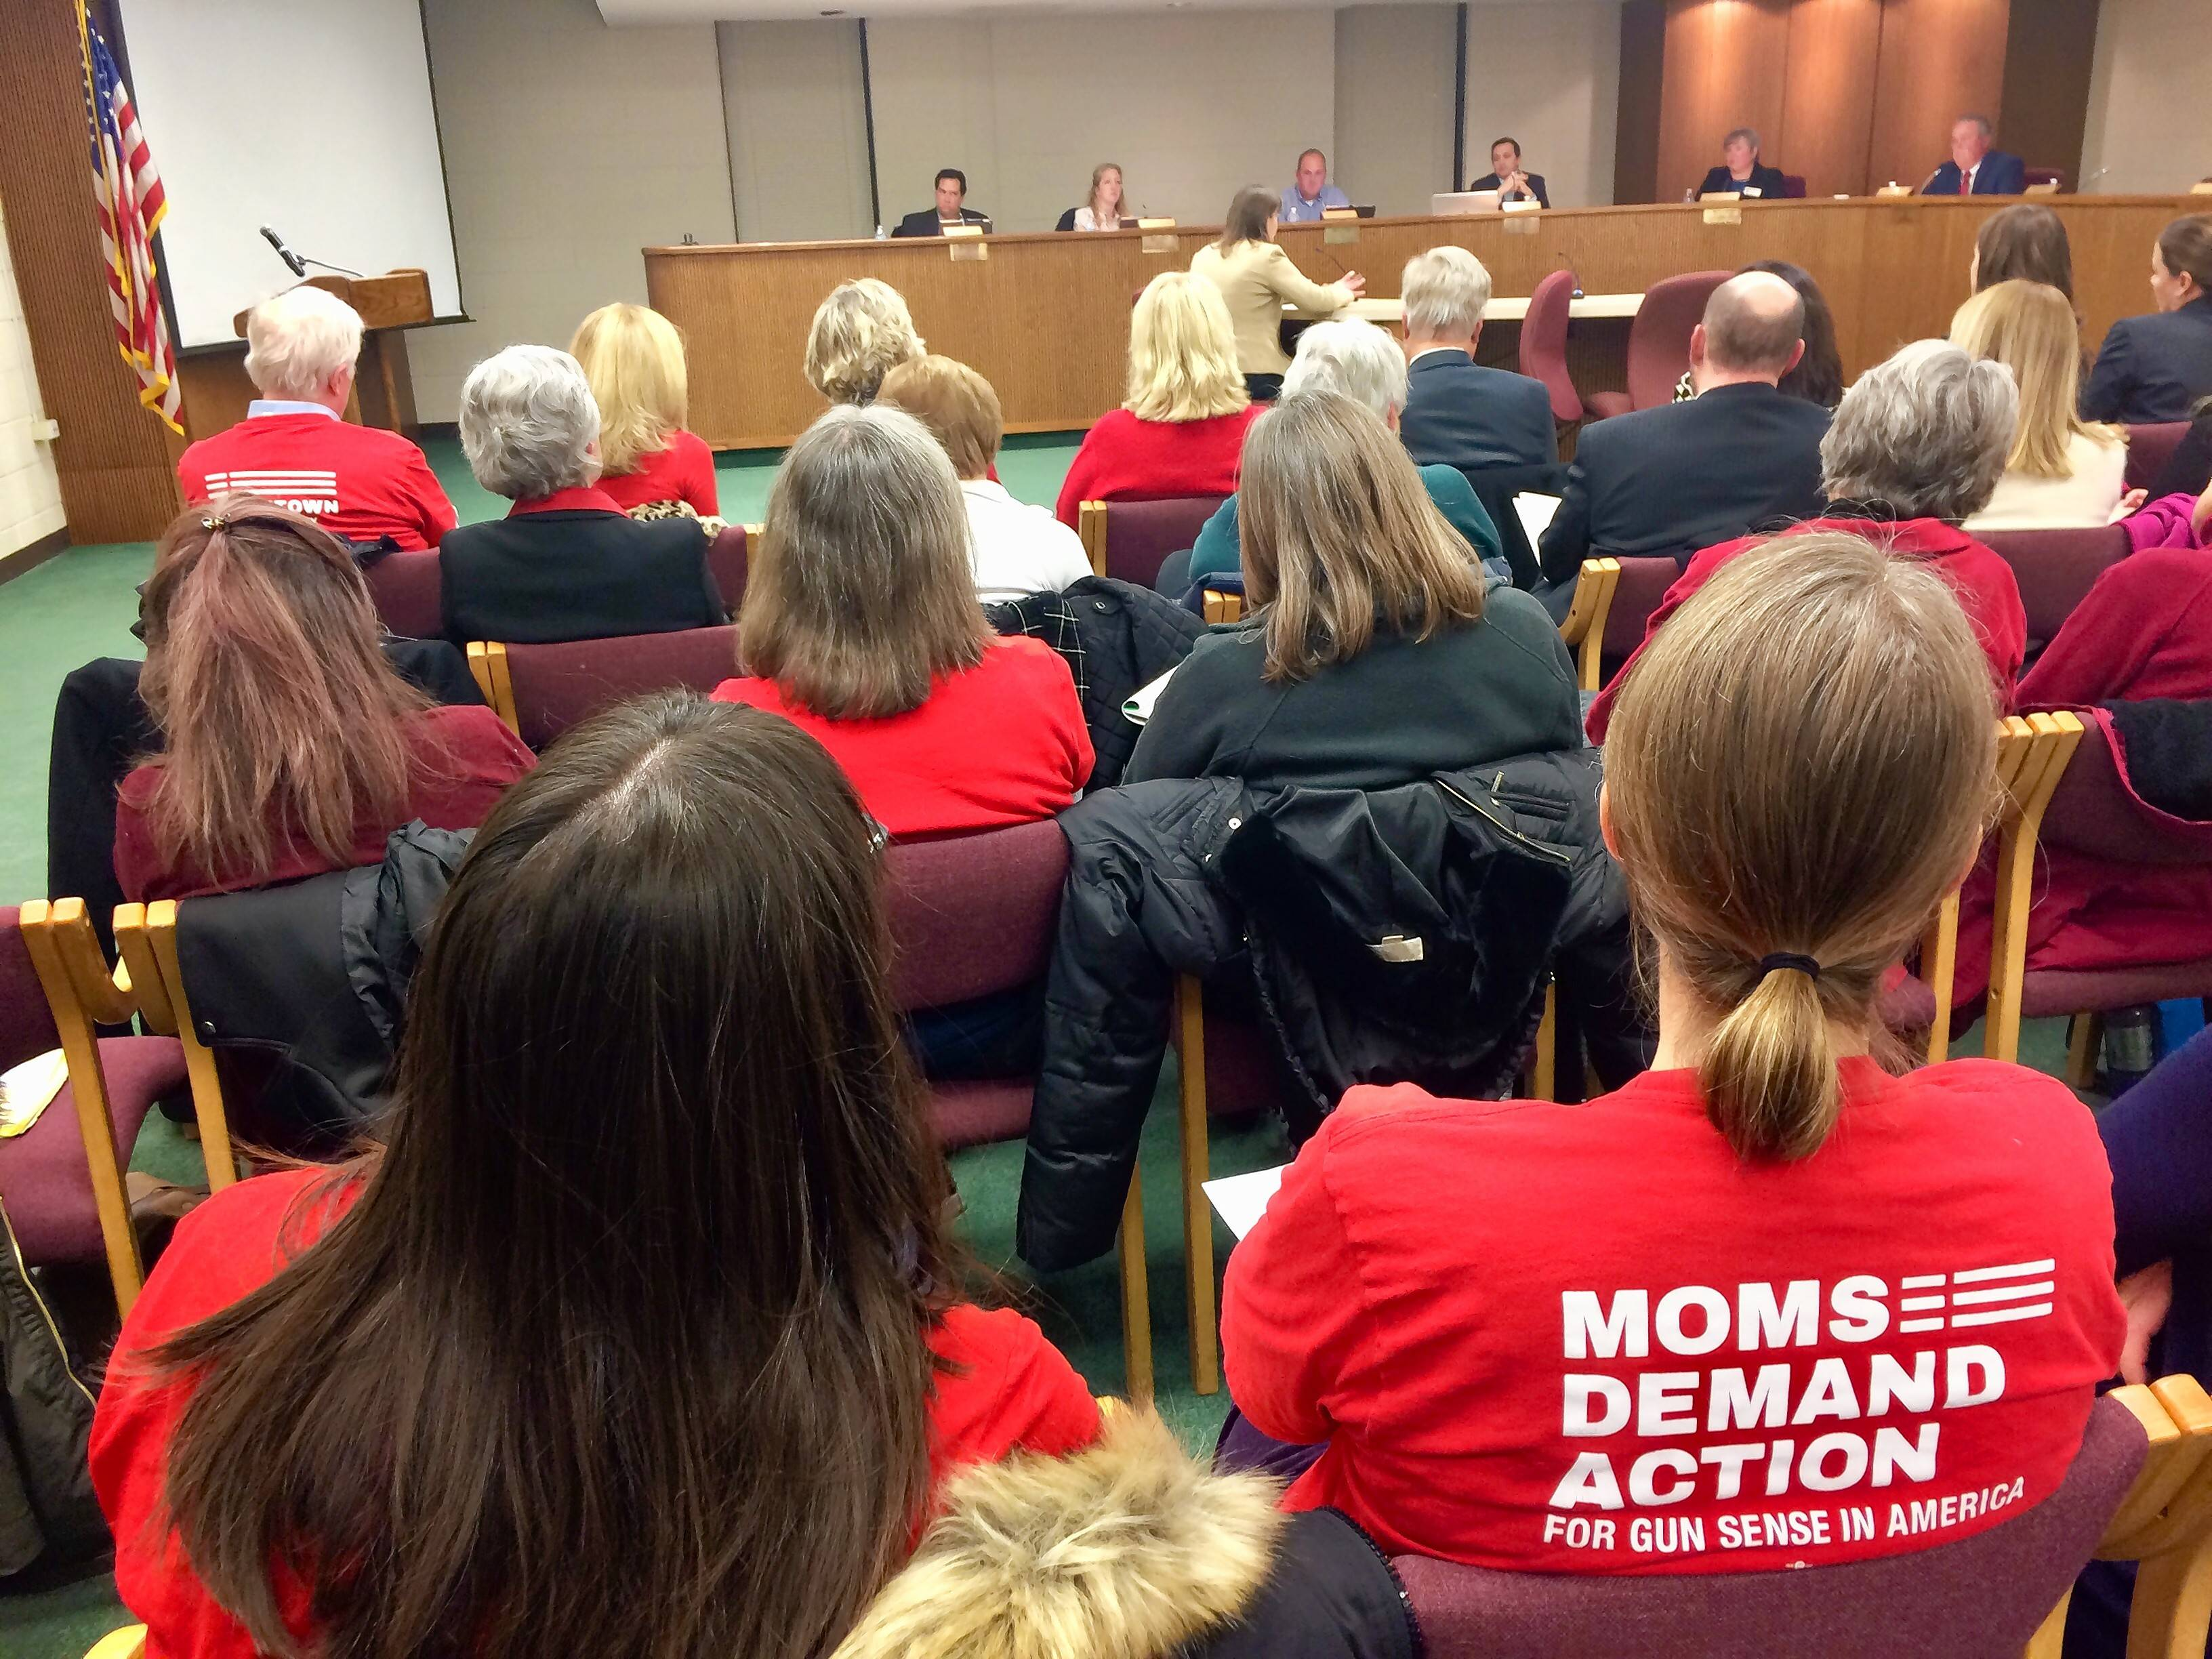 An idea to have armed retired police officers working front-office jobs to boost security at schools has been placed on hold at Palatine Township Elementary District 15. Some suburban members of Moms Demand Action for Gun Sense in America attended Wednesday night's District 15 school board meeting in Palatine to speak out against the proposal.